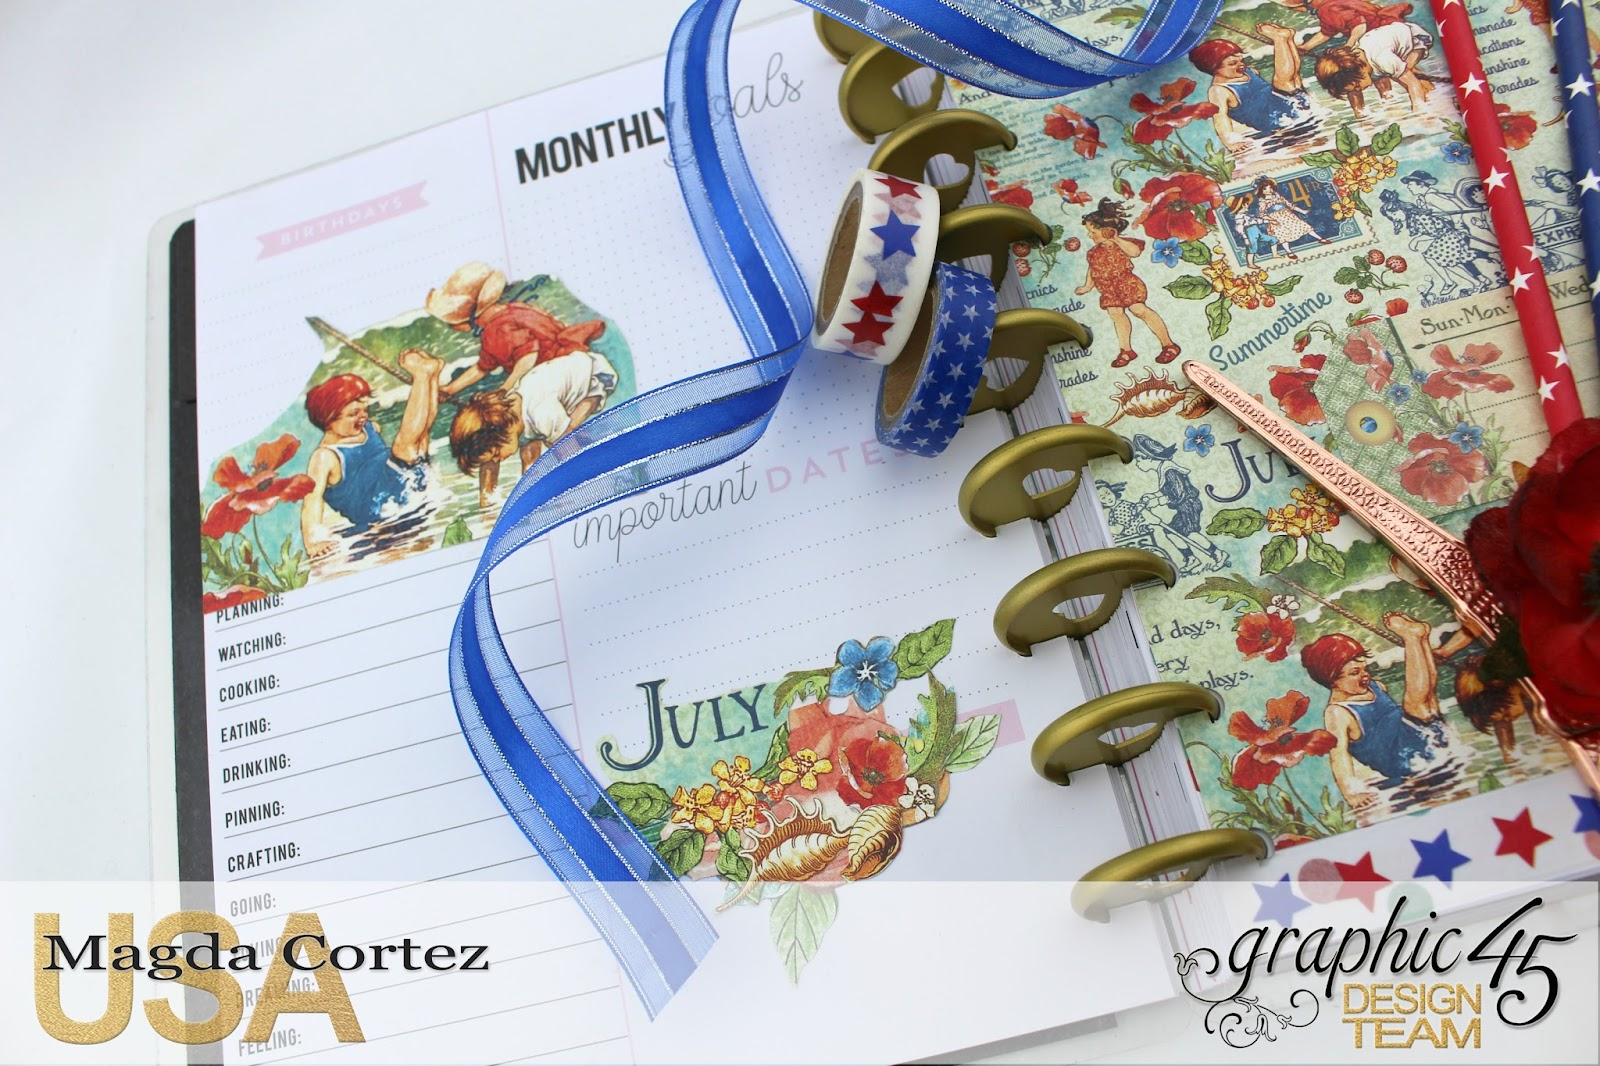 My JULY G45 Planner, Children's Hour By Magda Cortez, Product by G45, Photo 04 of 20  .jpg